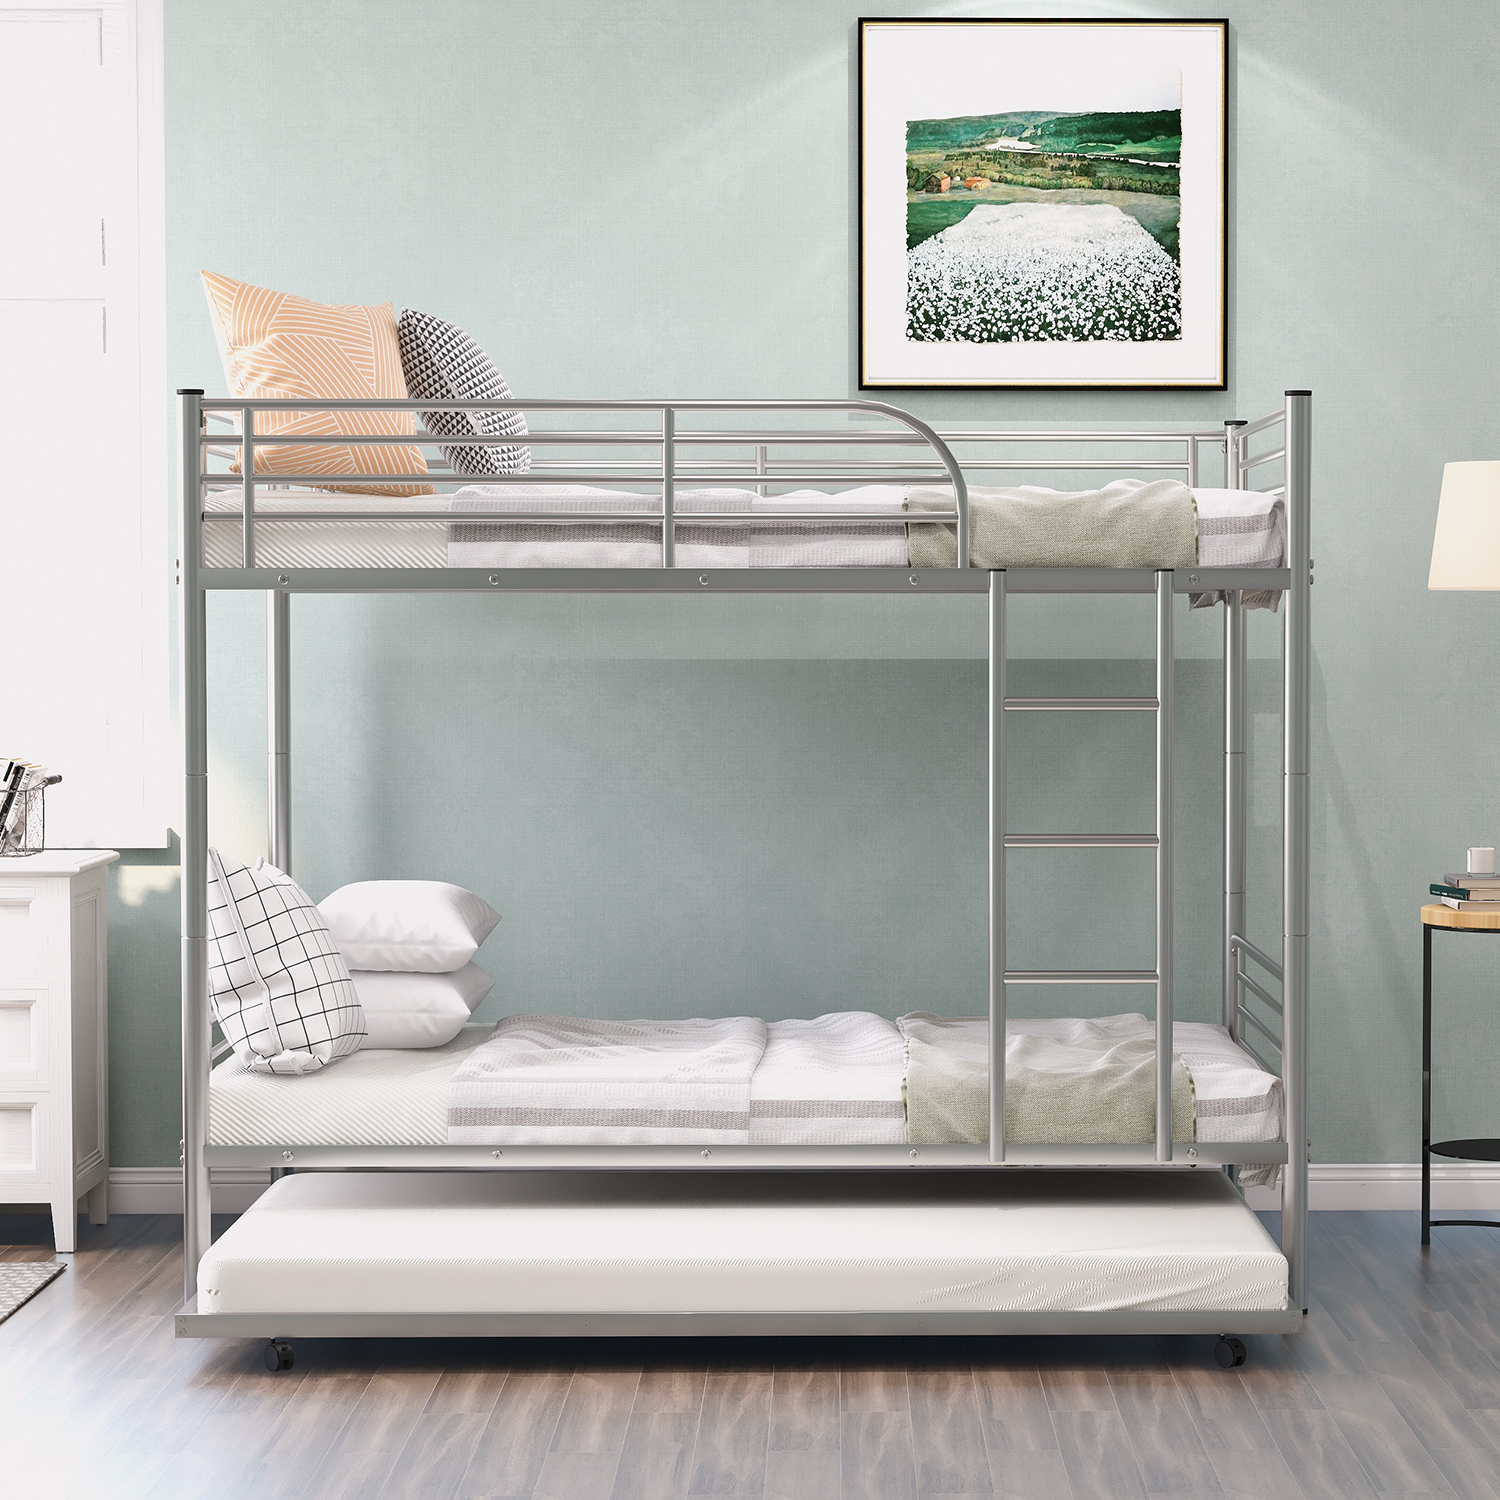 Twin Over Twin Bunk Bed With Trundle Metal Twin Bed With Safety Guard Rail And Ladders Space Saving Design Sleeping Bedroom Bunk Bed For Boys Girls Kids Young Teens Adults Easy Assembly